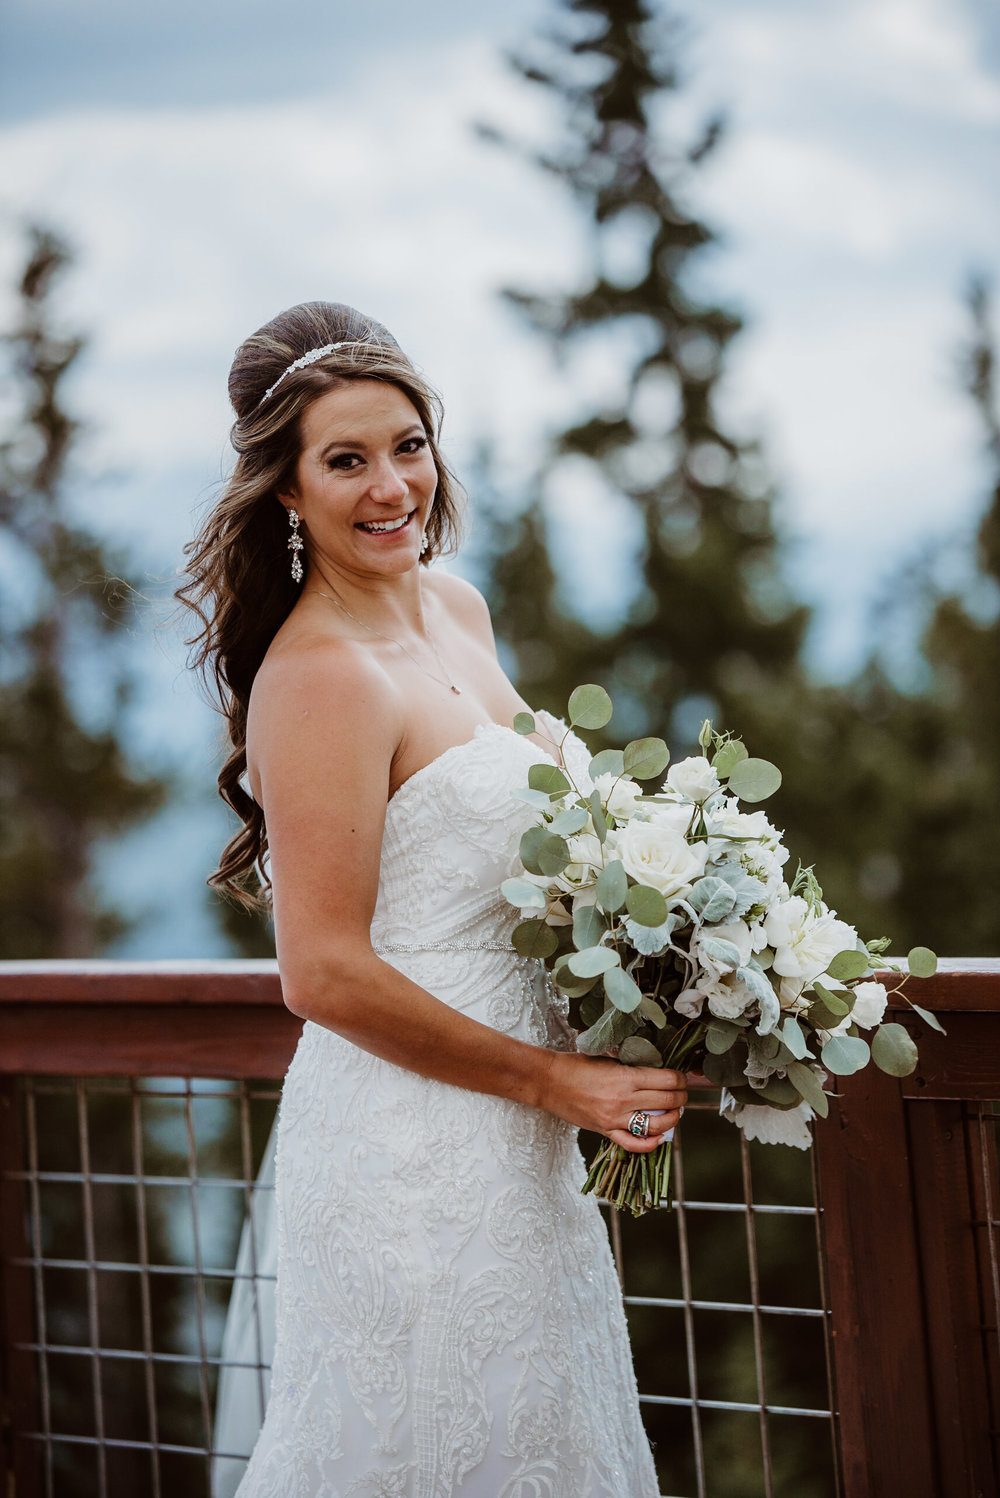 Bride at Keystone, Colorado mountain wedding